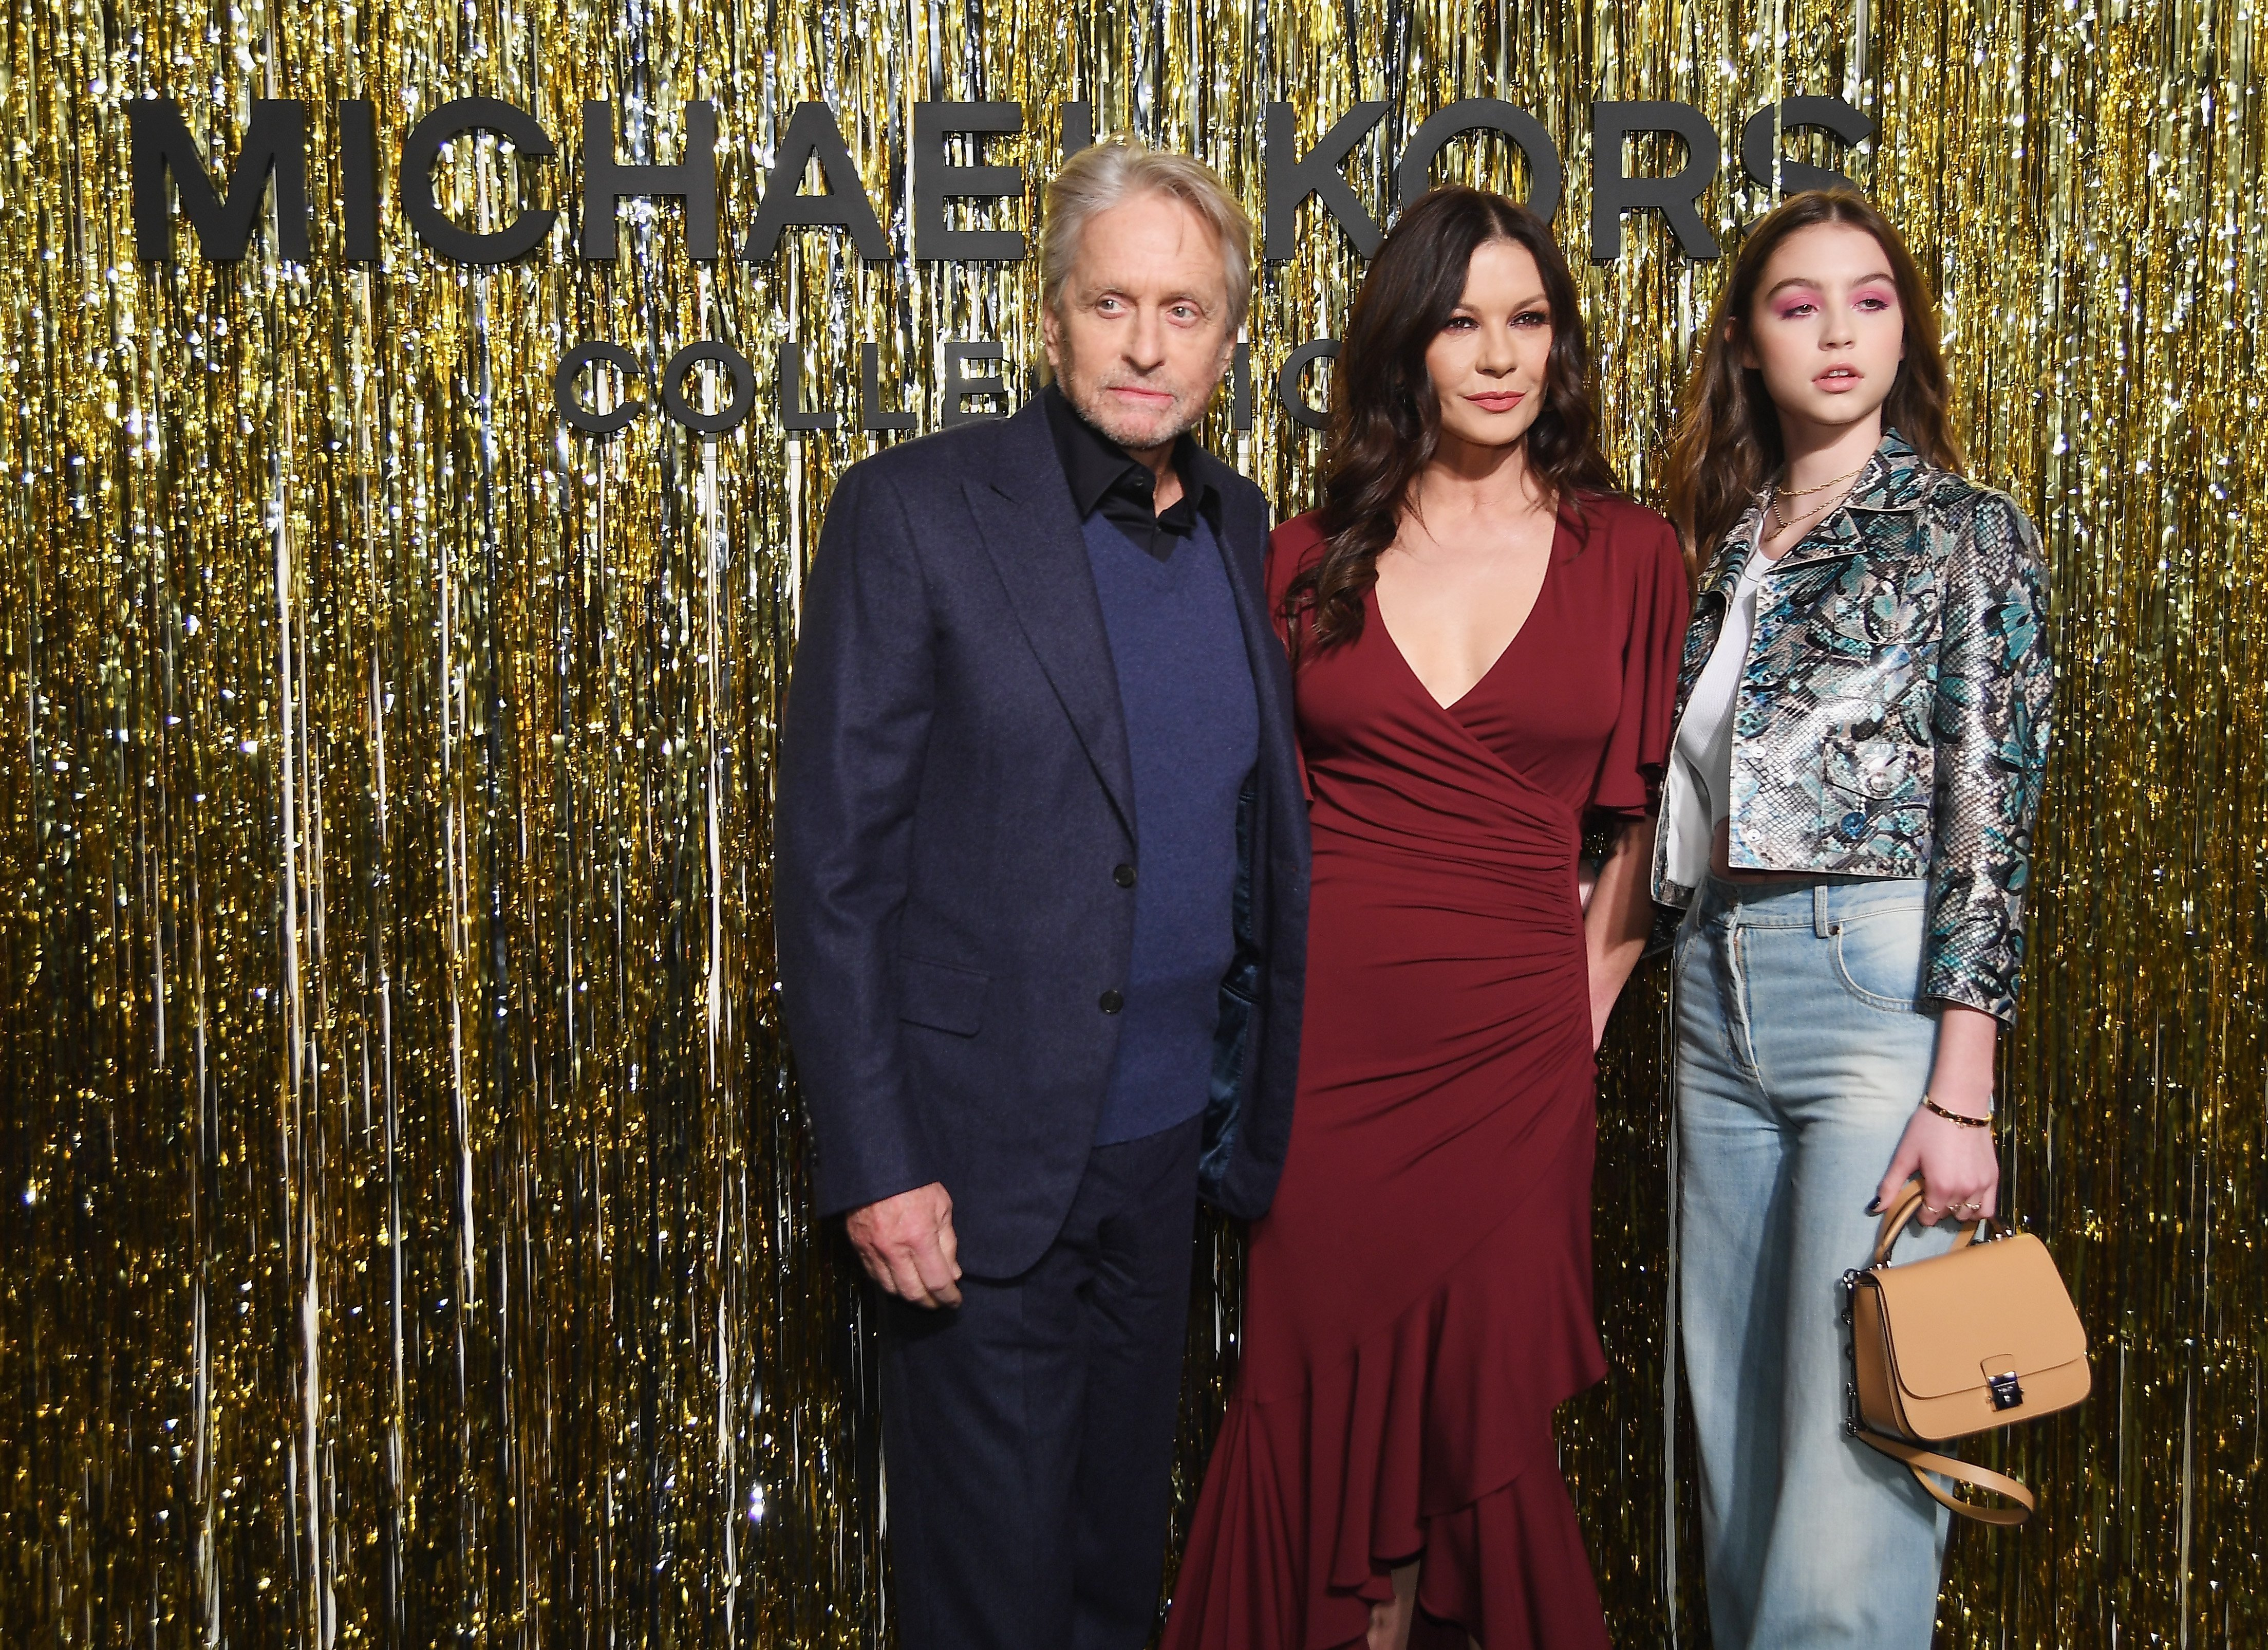 Catherine Zeta-Jones, Michael Douglas, & Carys Jones at the New York Fashion Week on February 13, 2019 | Photo: Getty Images